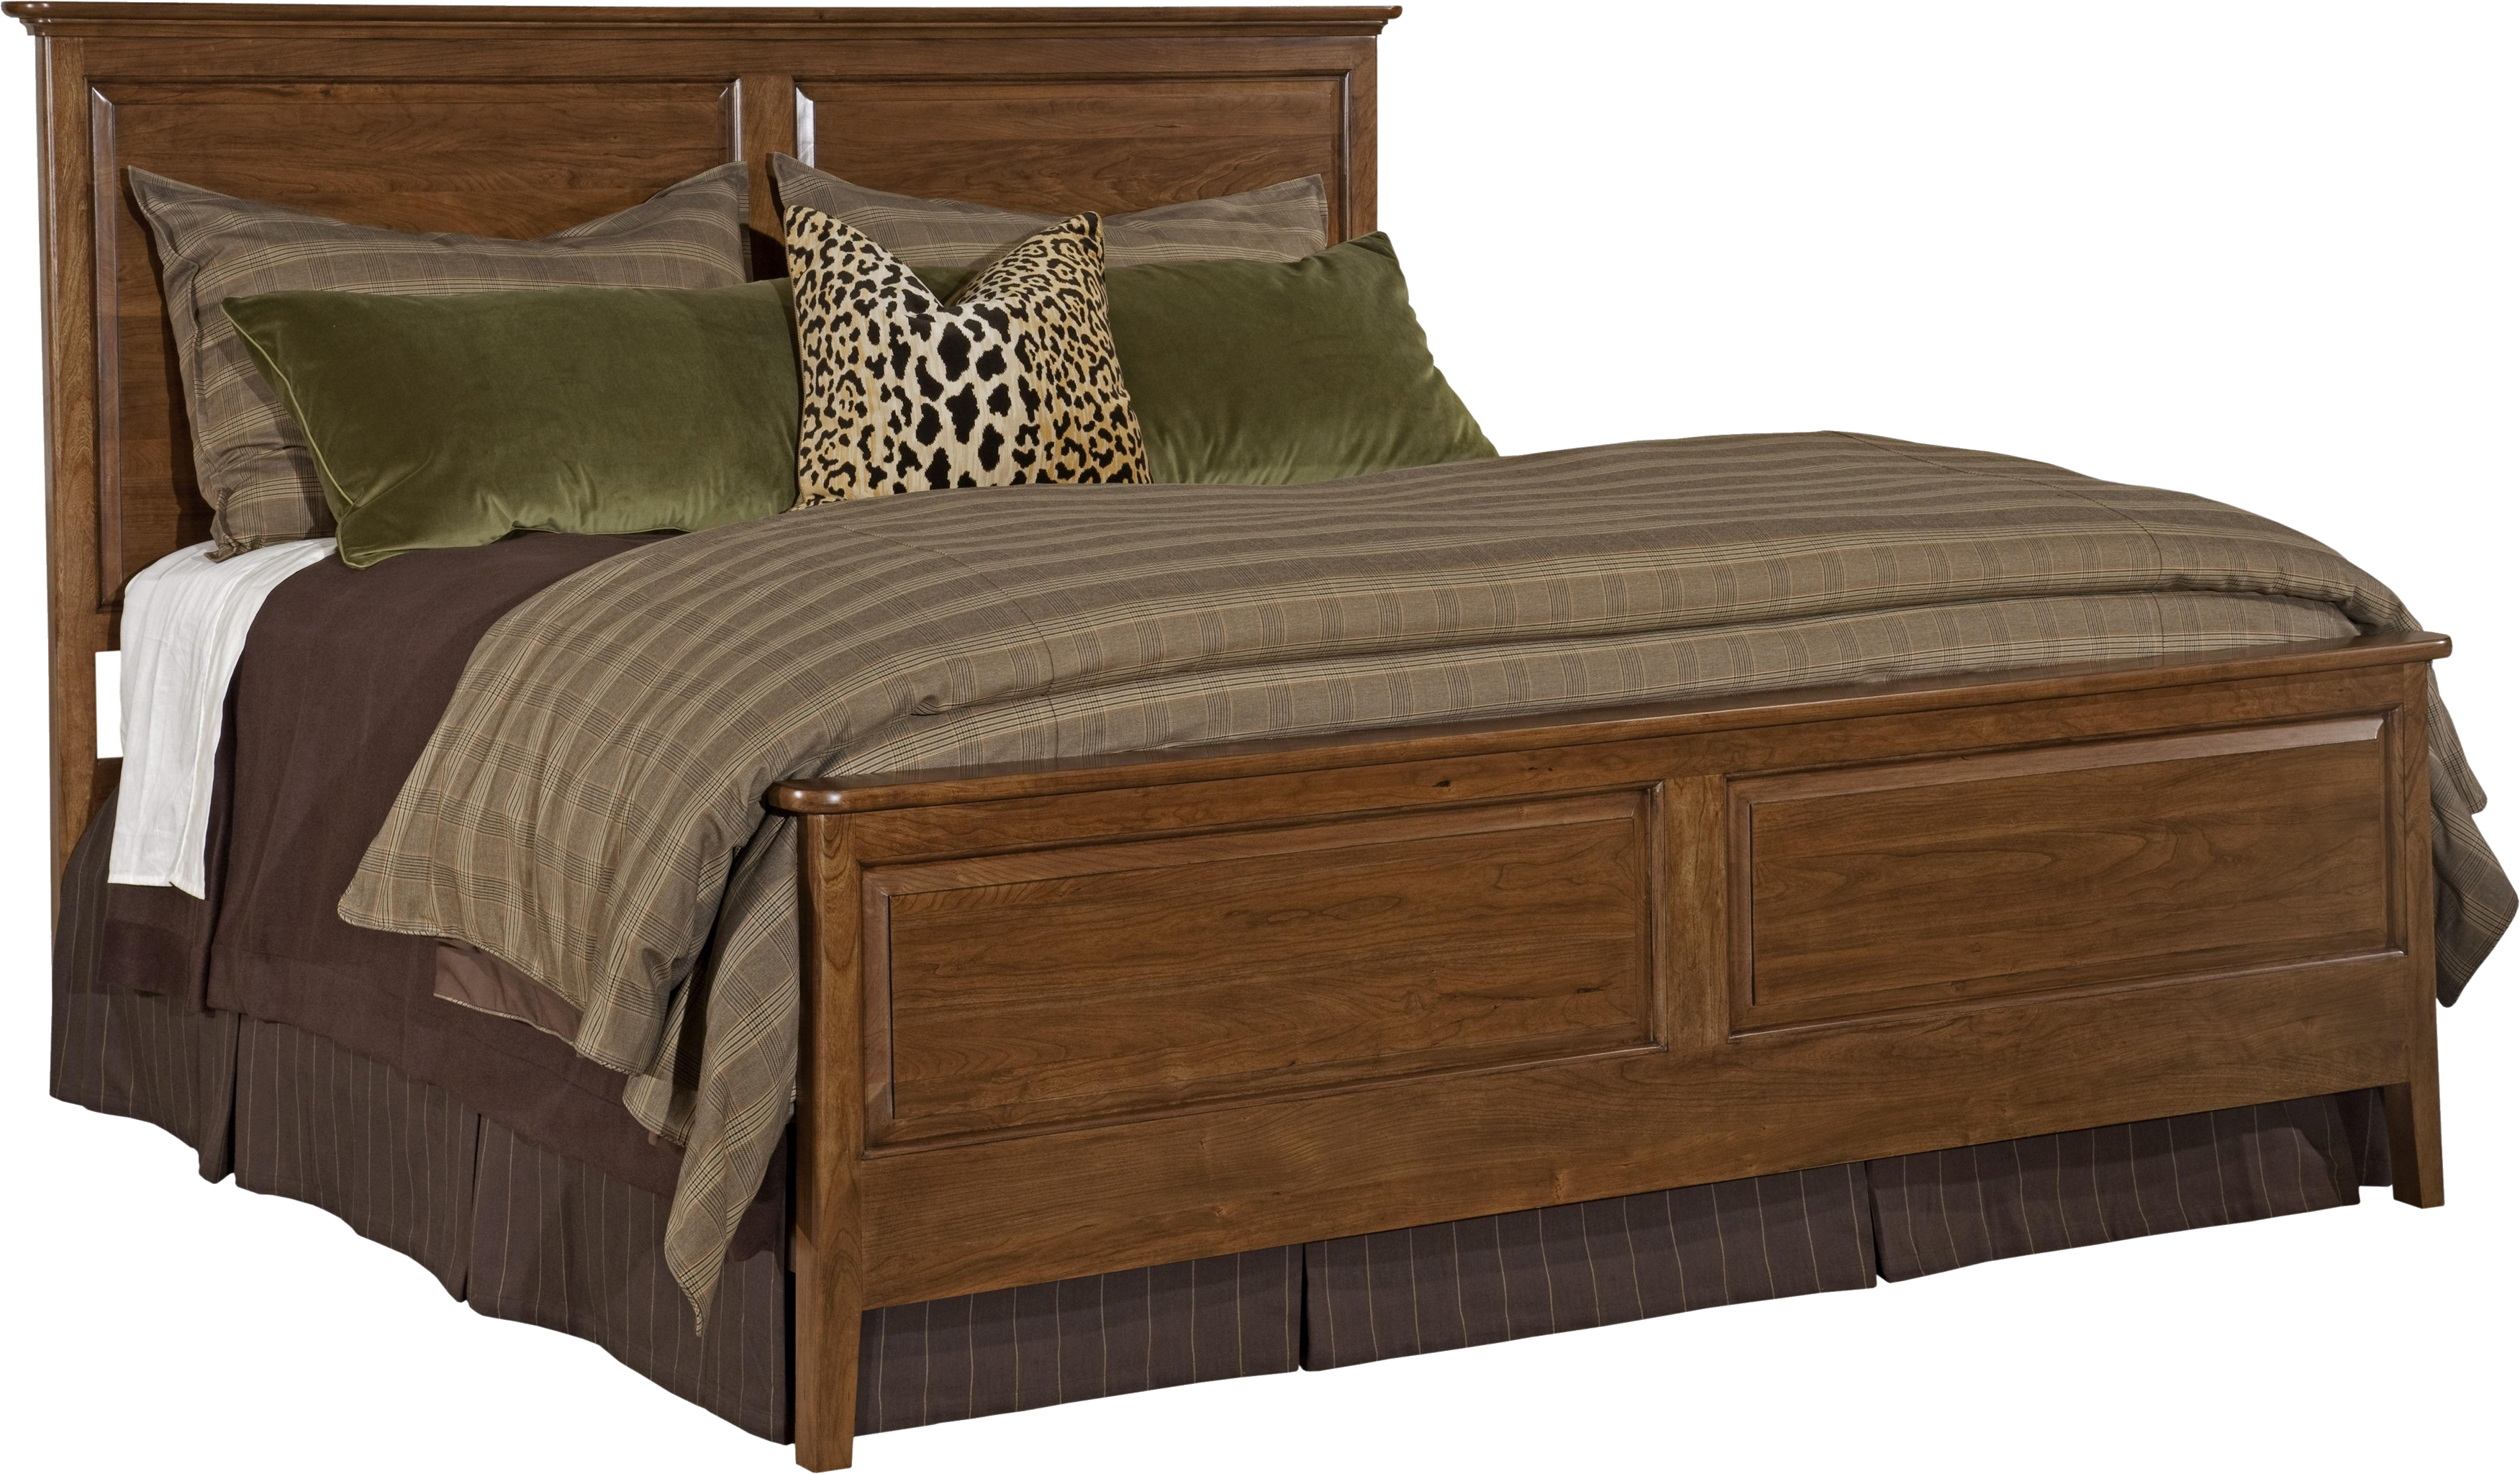 Clipart bed modern bed. Png images free download